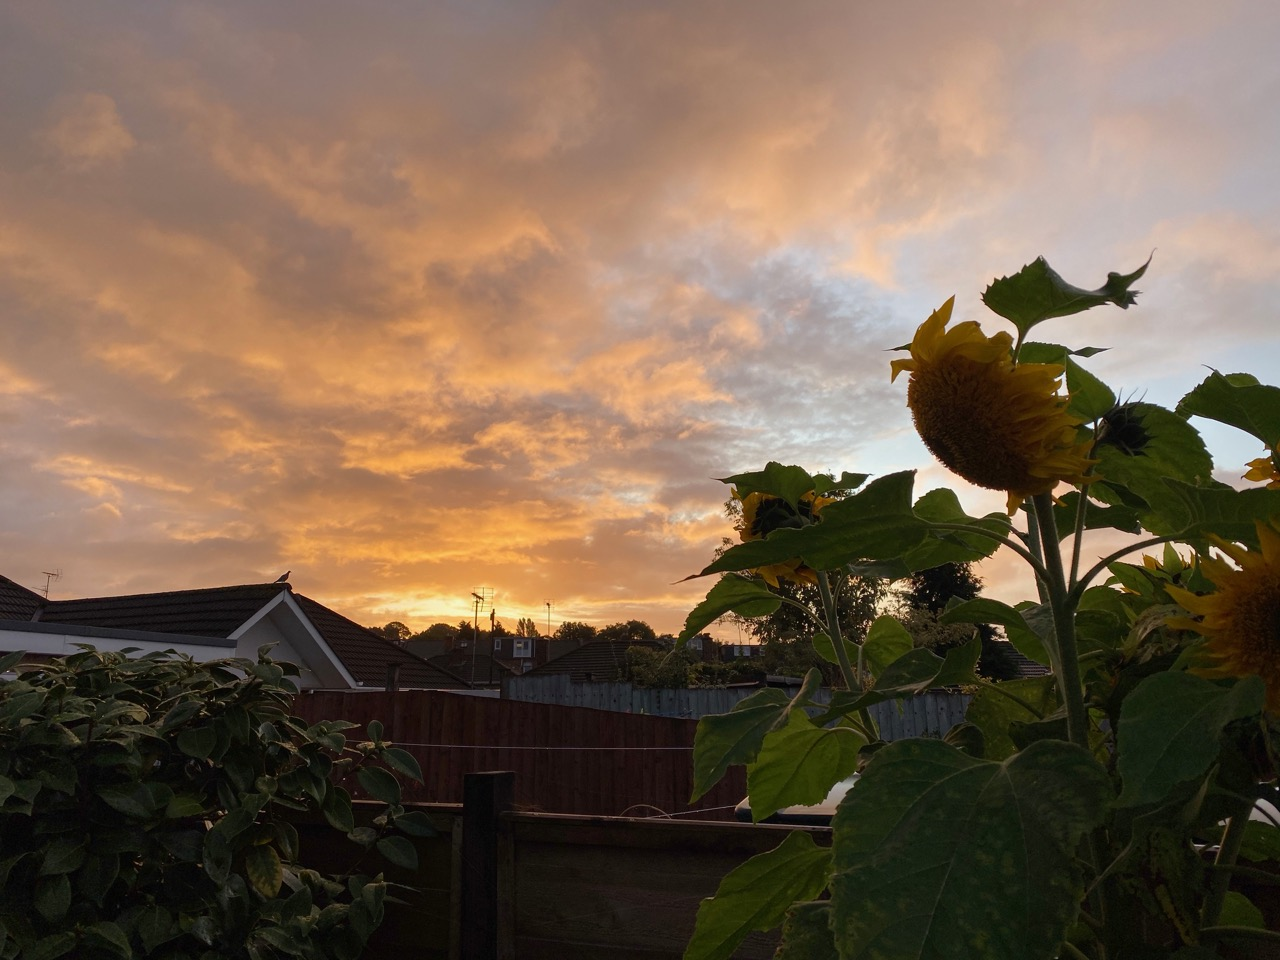 Sunflowers in early autumn sunrise with pink sky